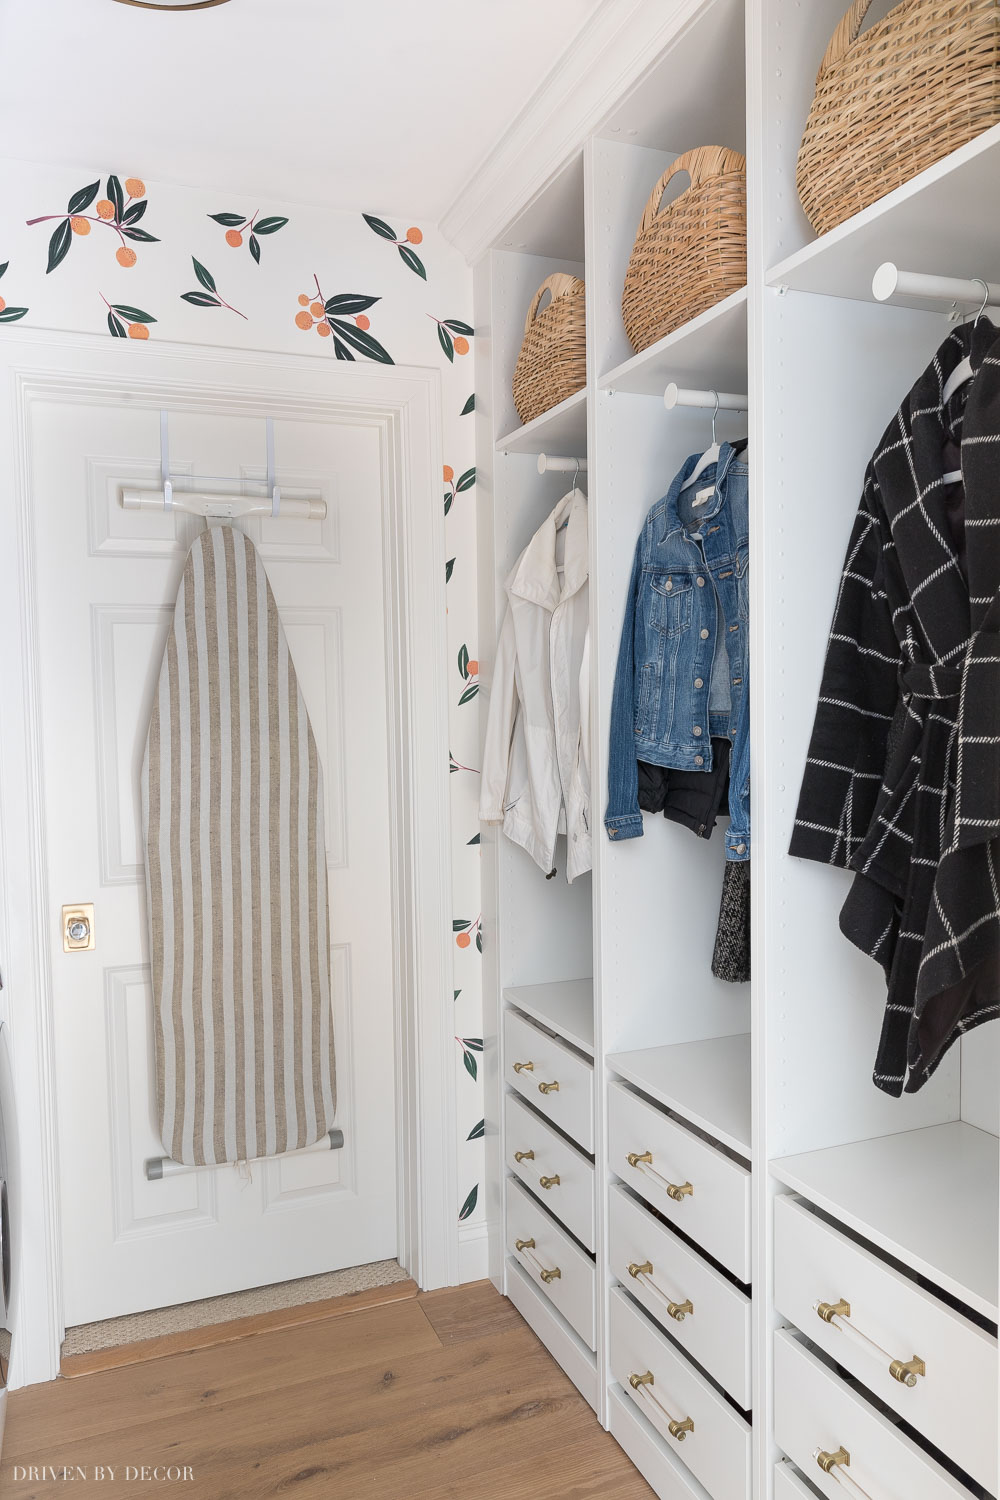 Ikea Pax wardrobes installed in our laundry room to create storage for shoes and coats!